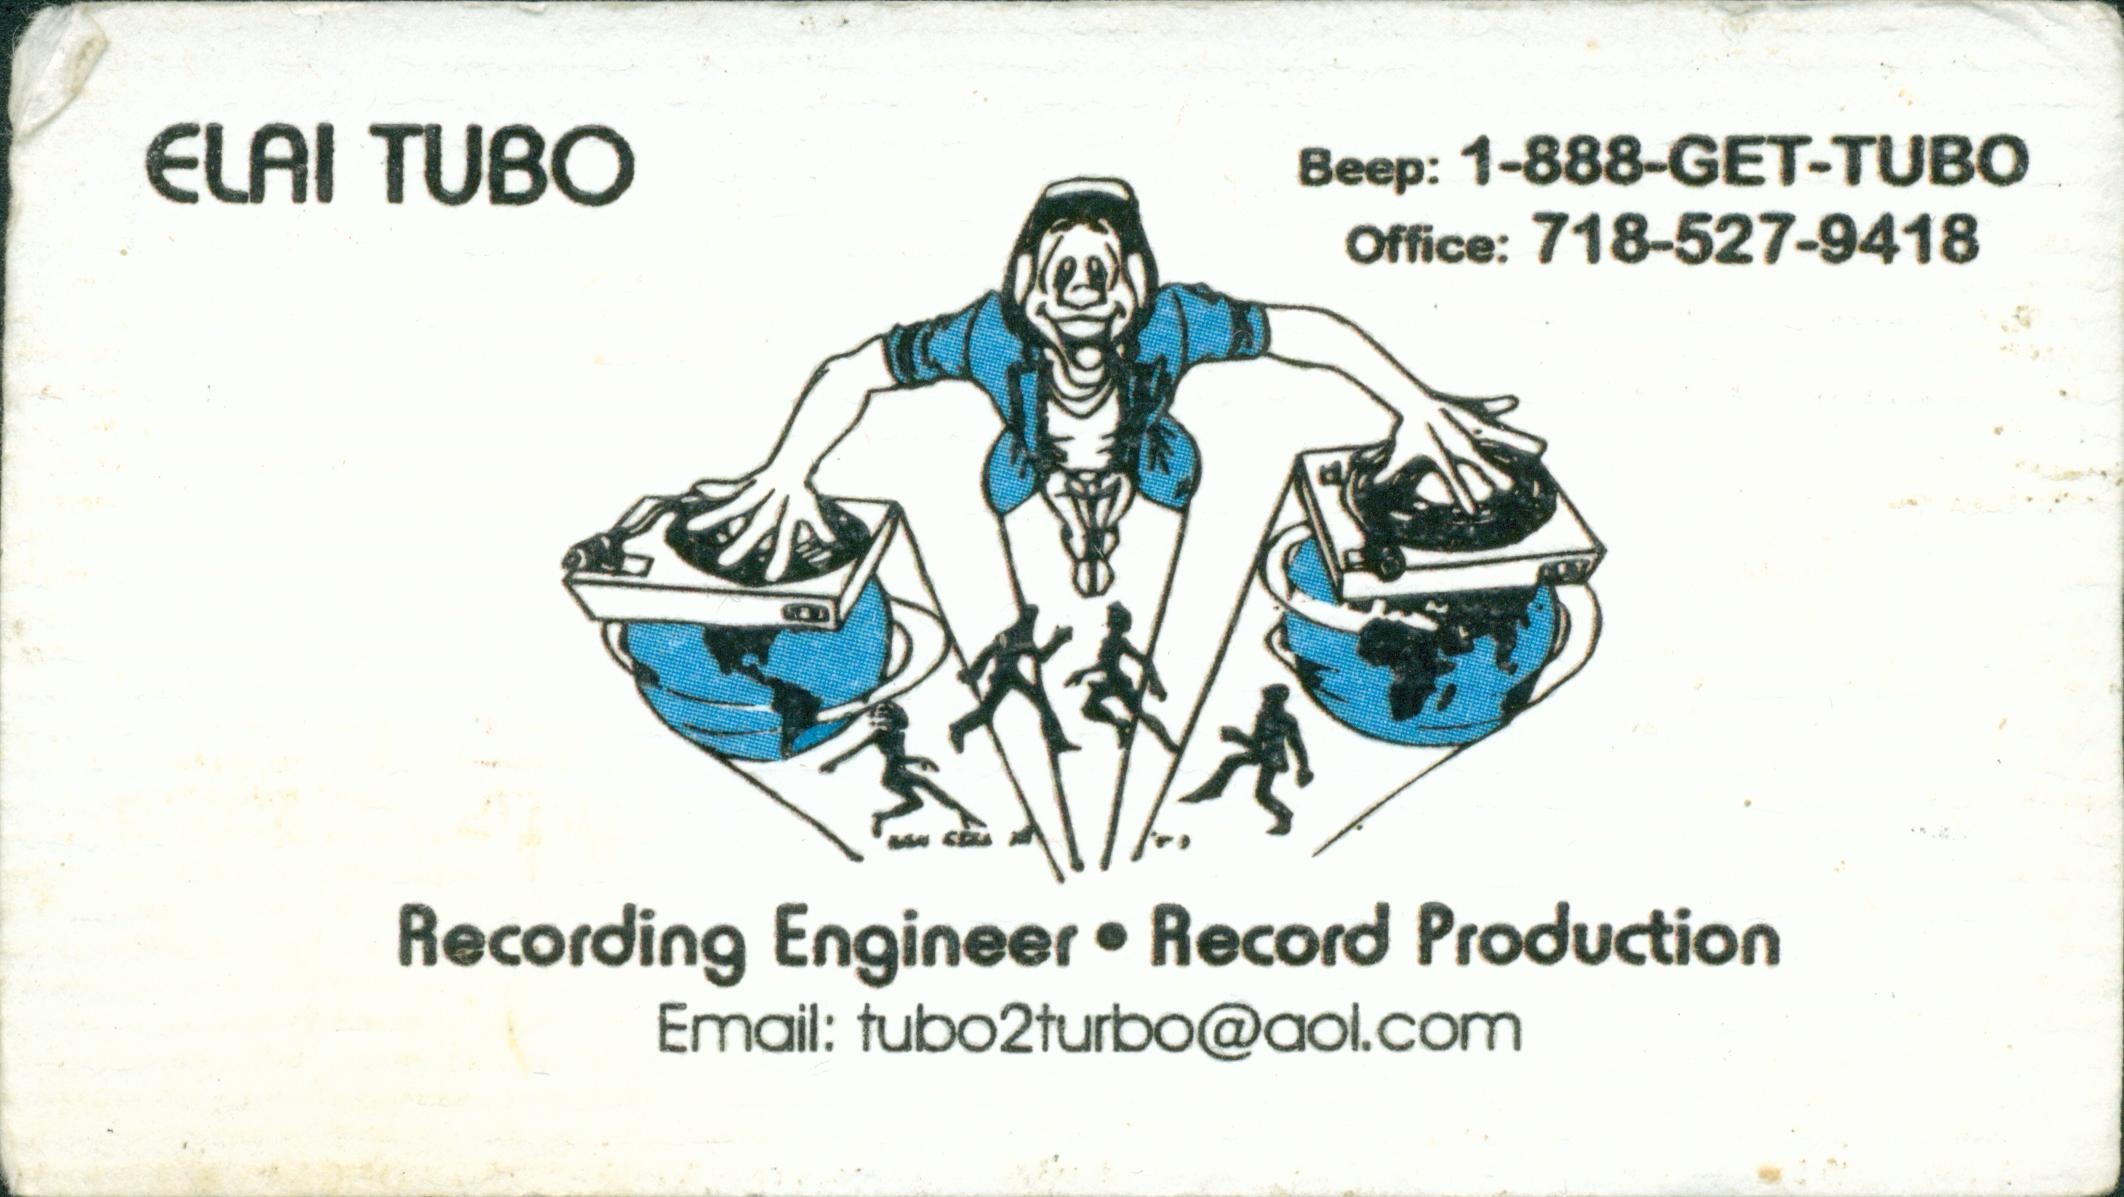 TUBO OLD SCHOOL BUSINESS CARD 2